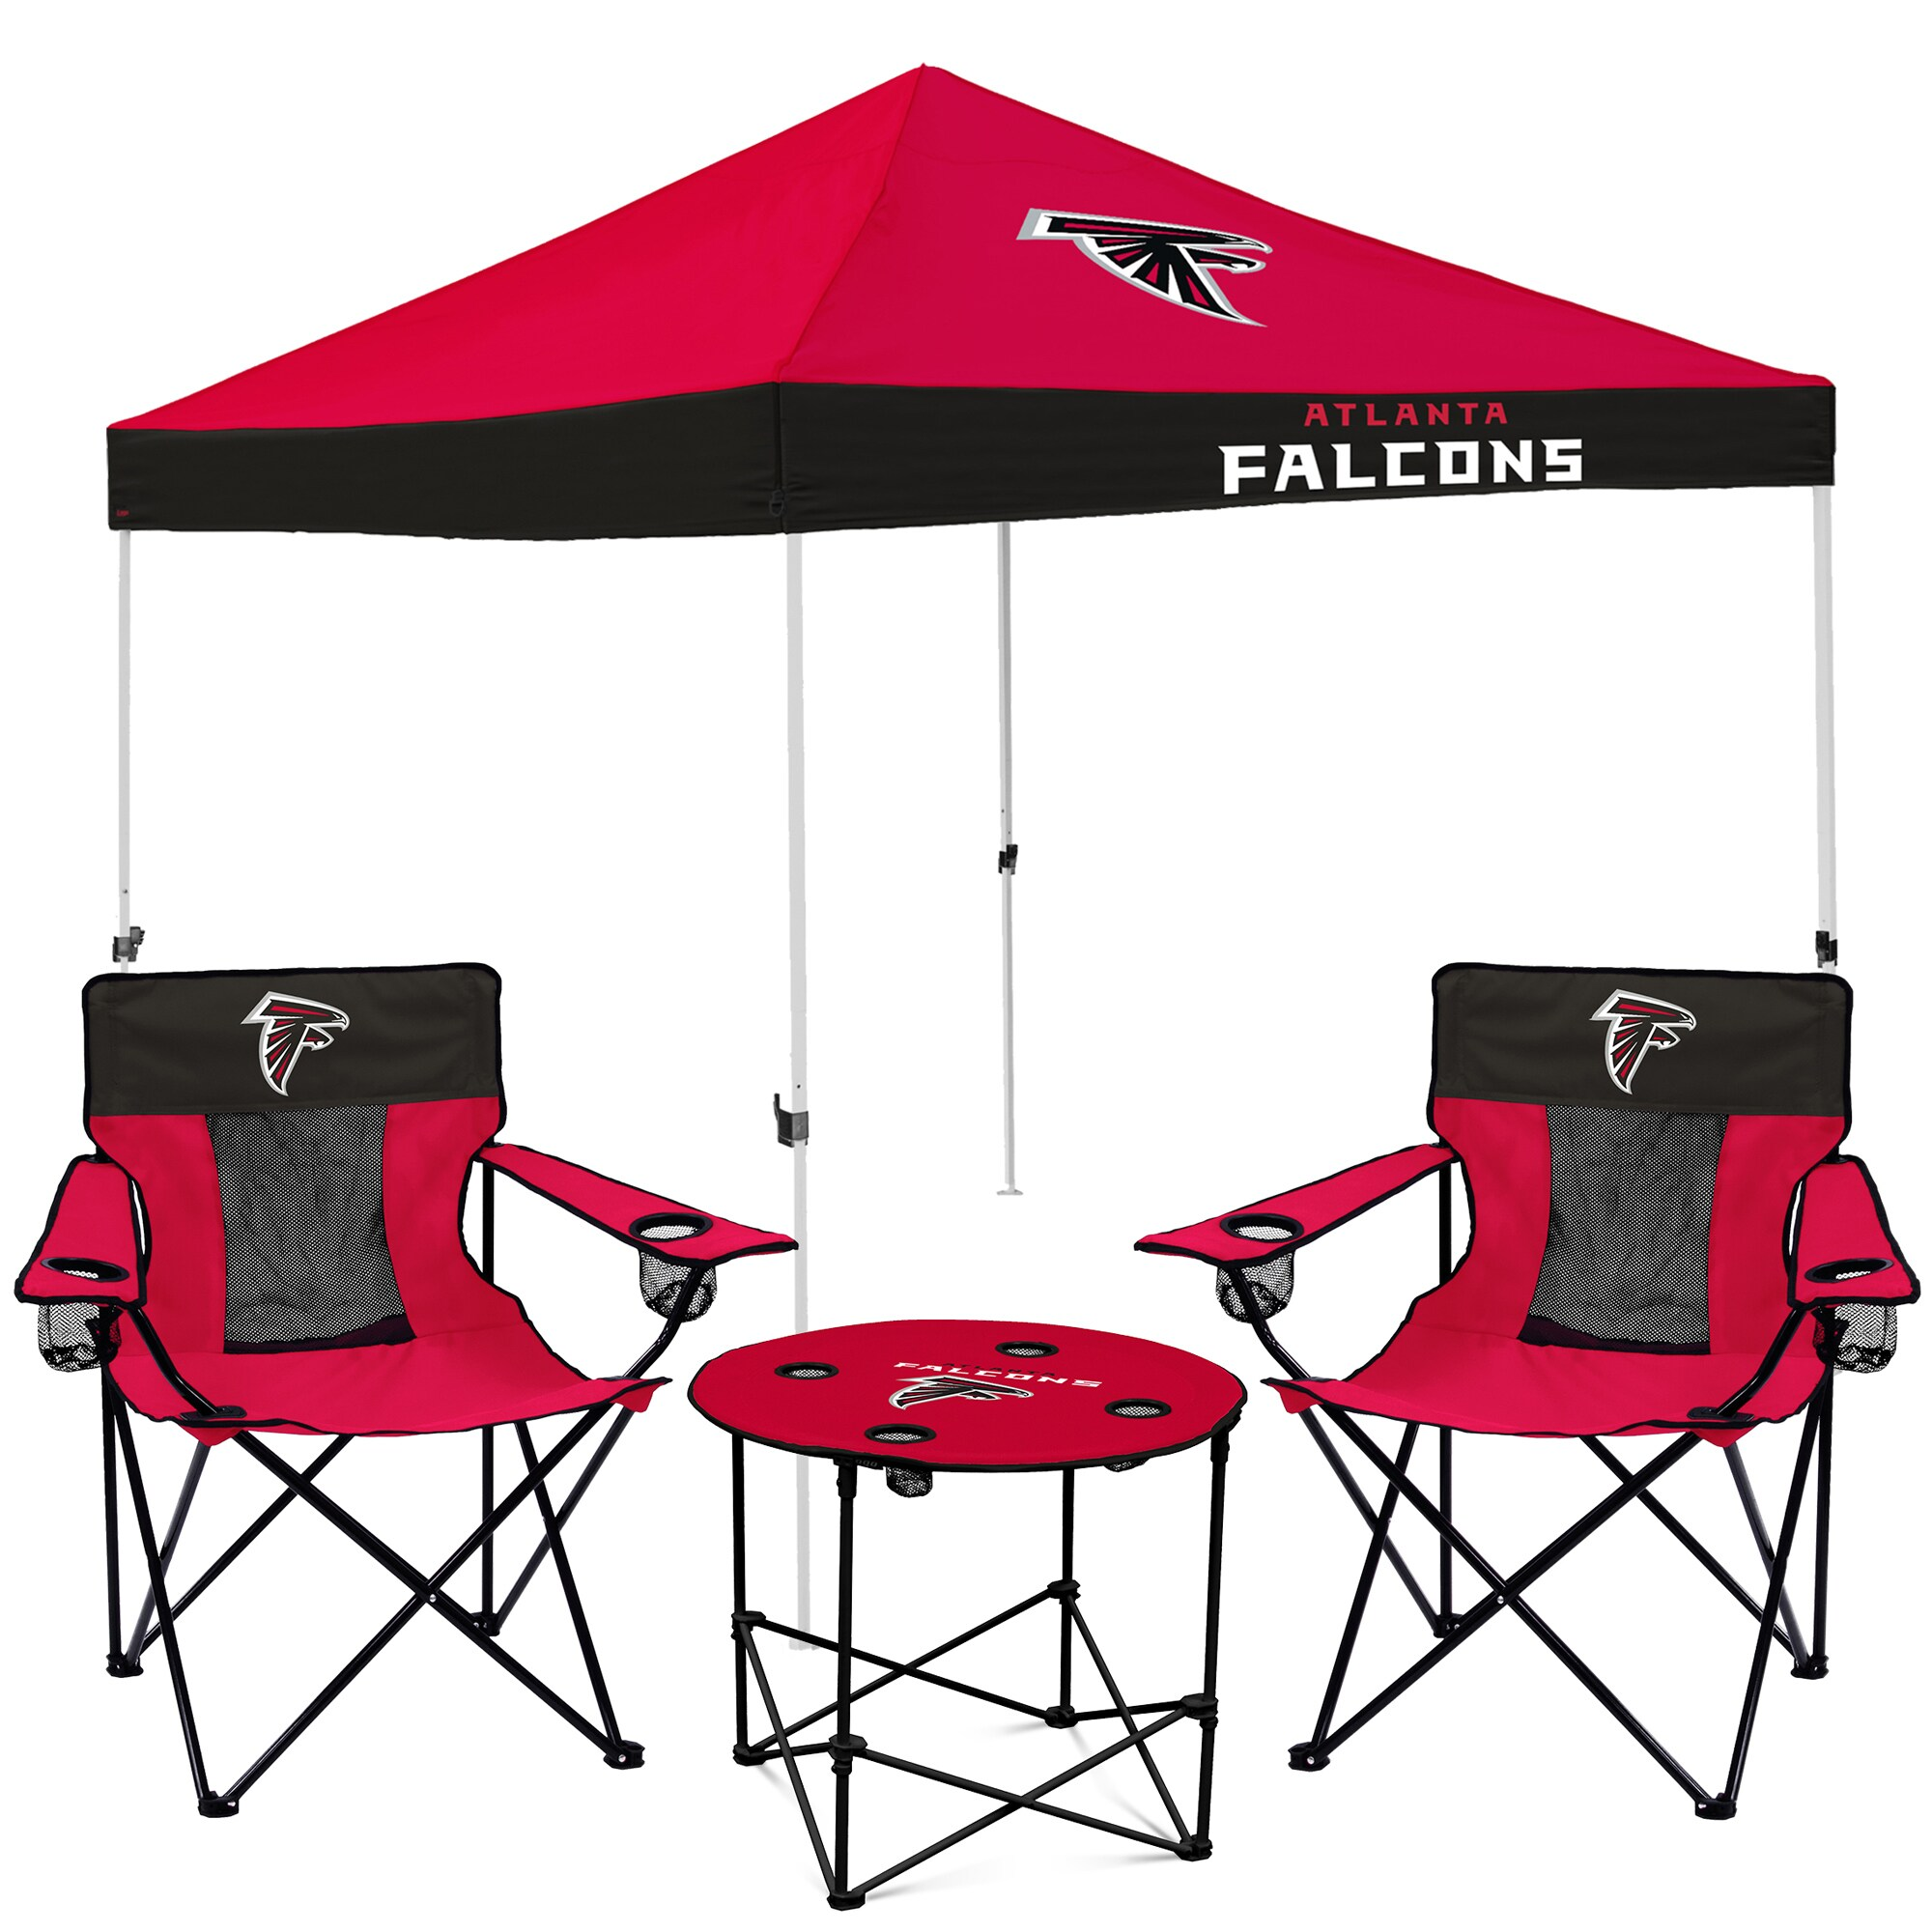 Atlanta Falcons Tailgate Canopy Tent, Table, & Chairs Set